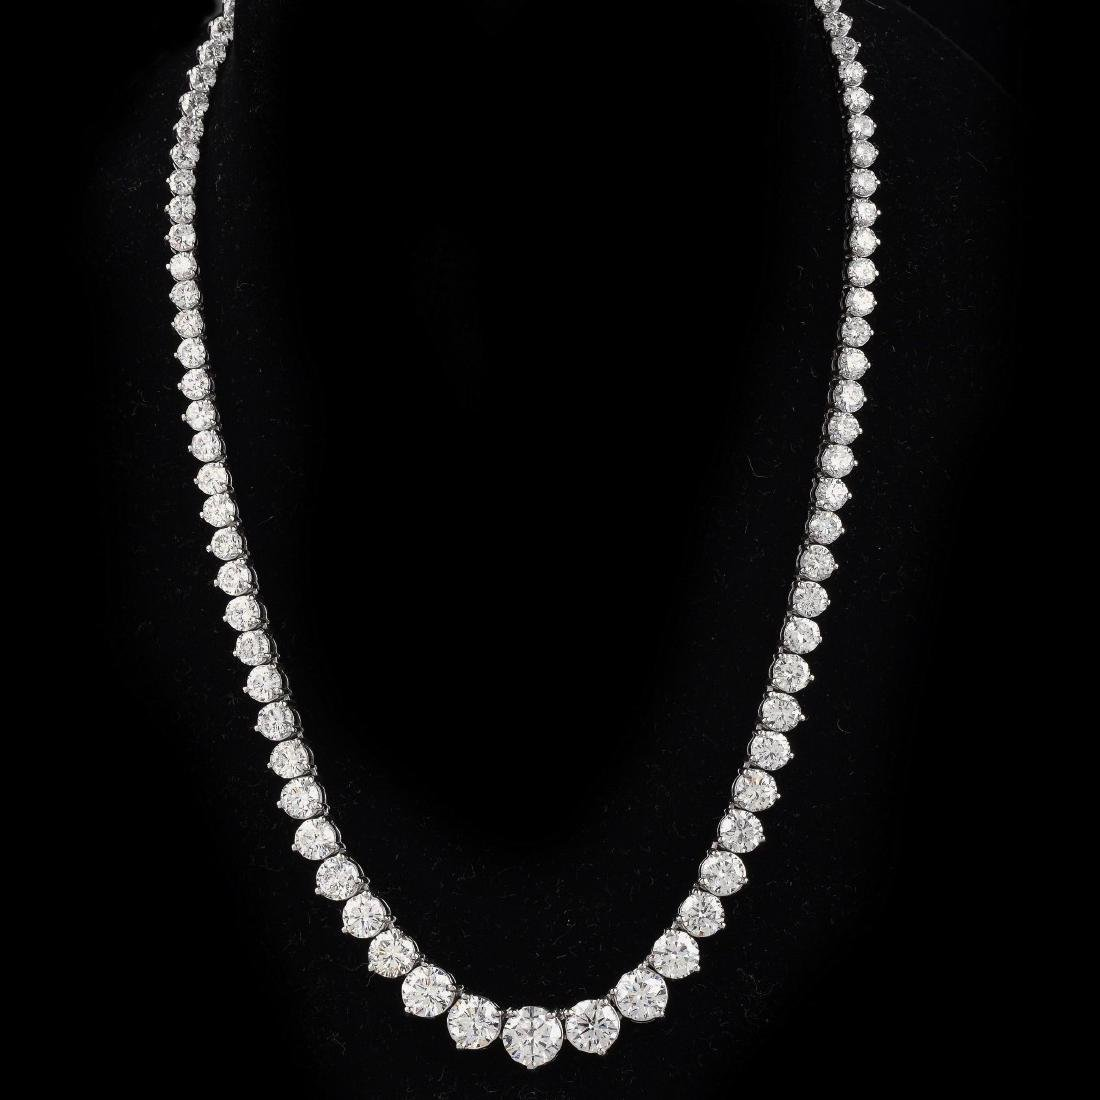 Very Fine 36.0ct TW Diamond Riviera Necklace